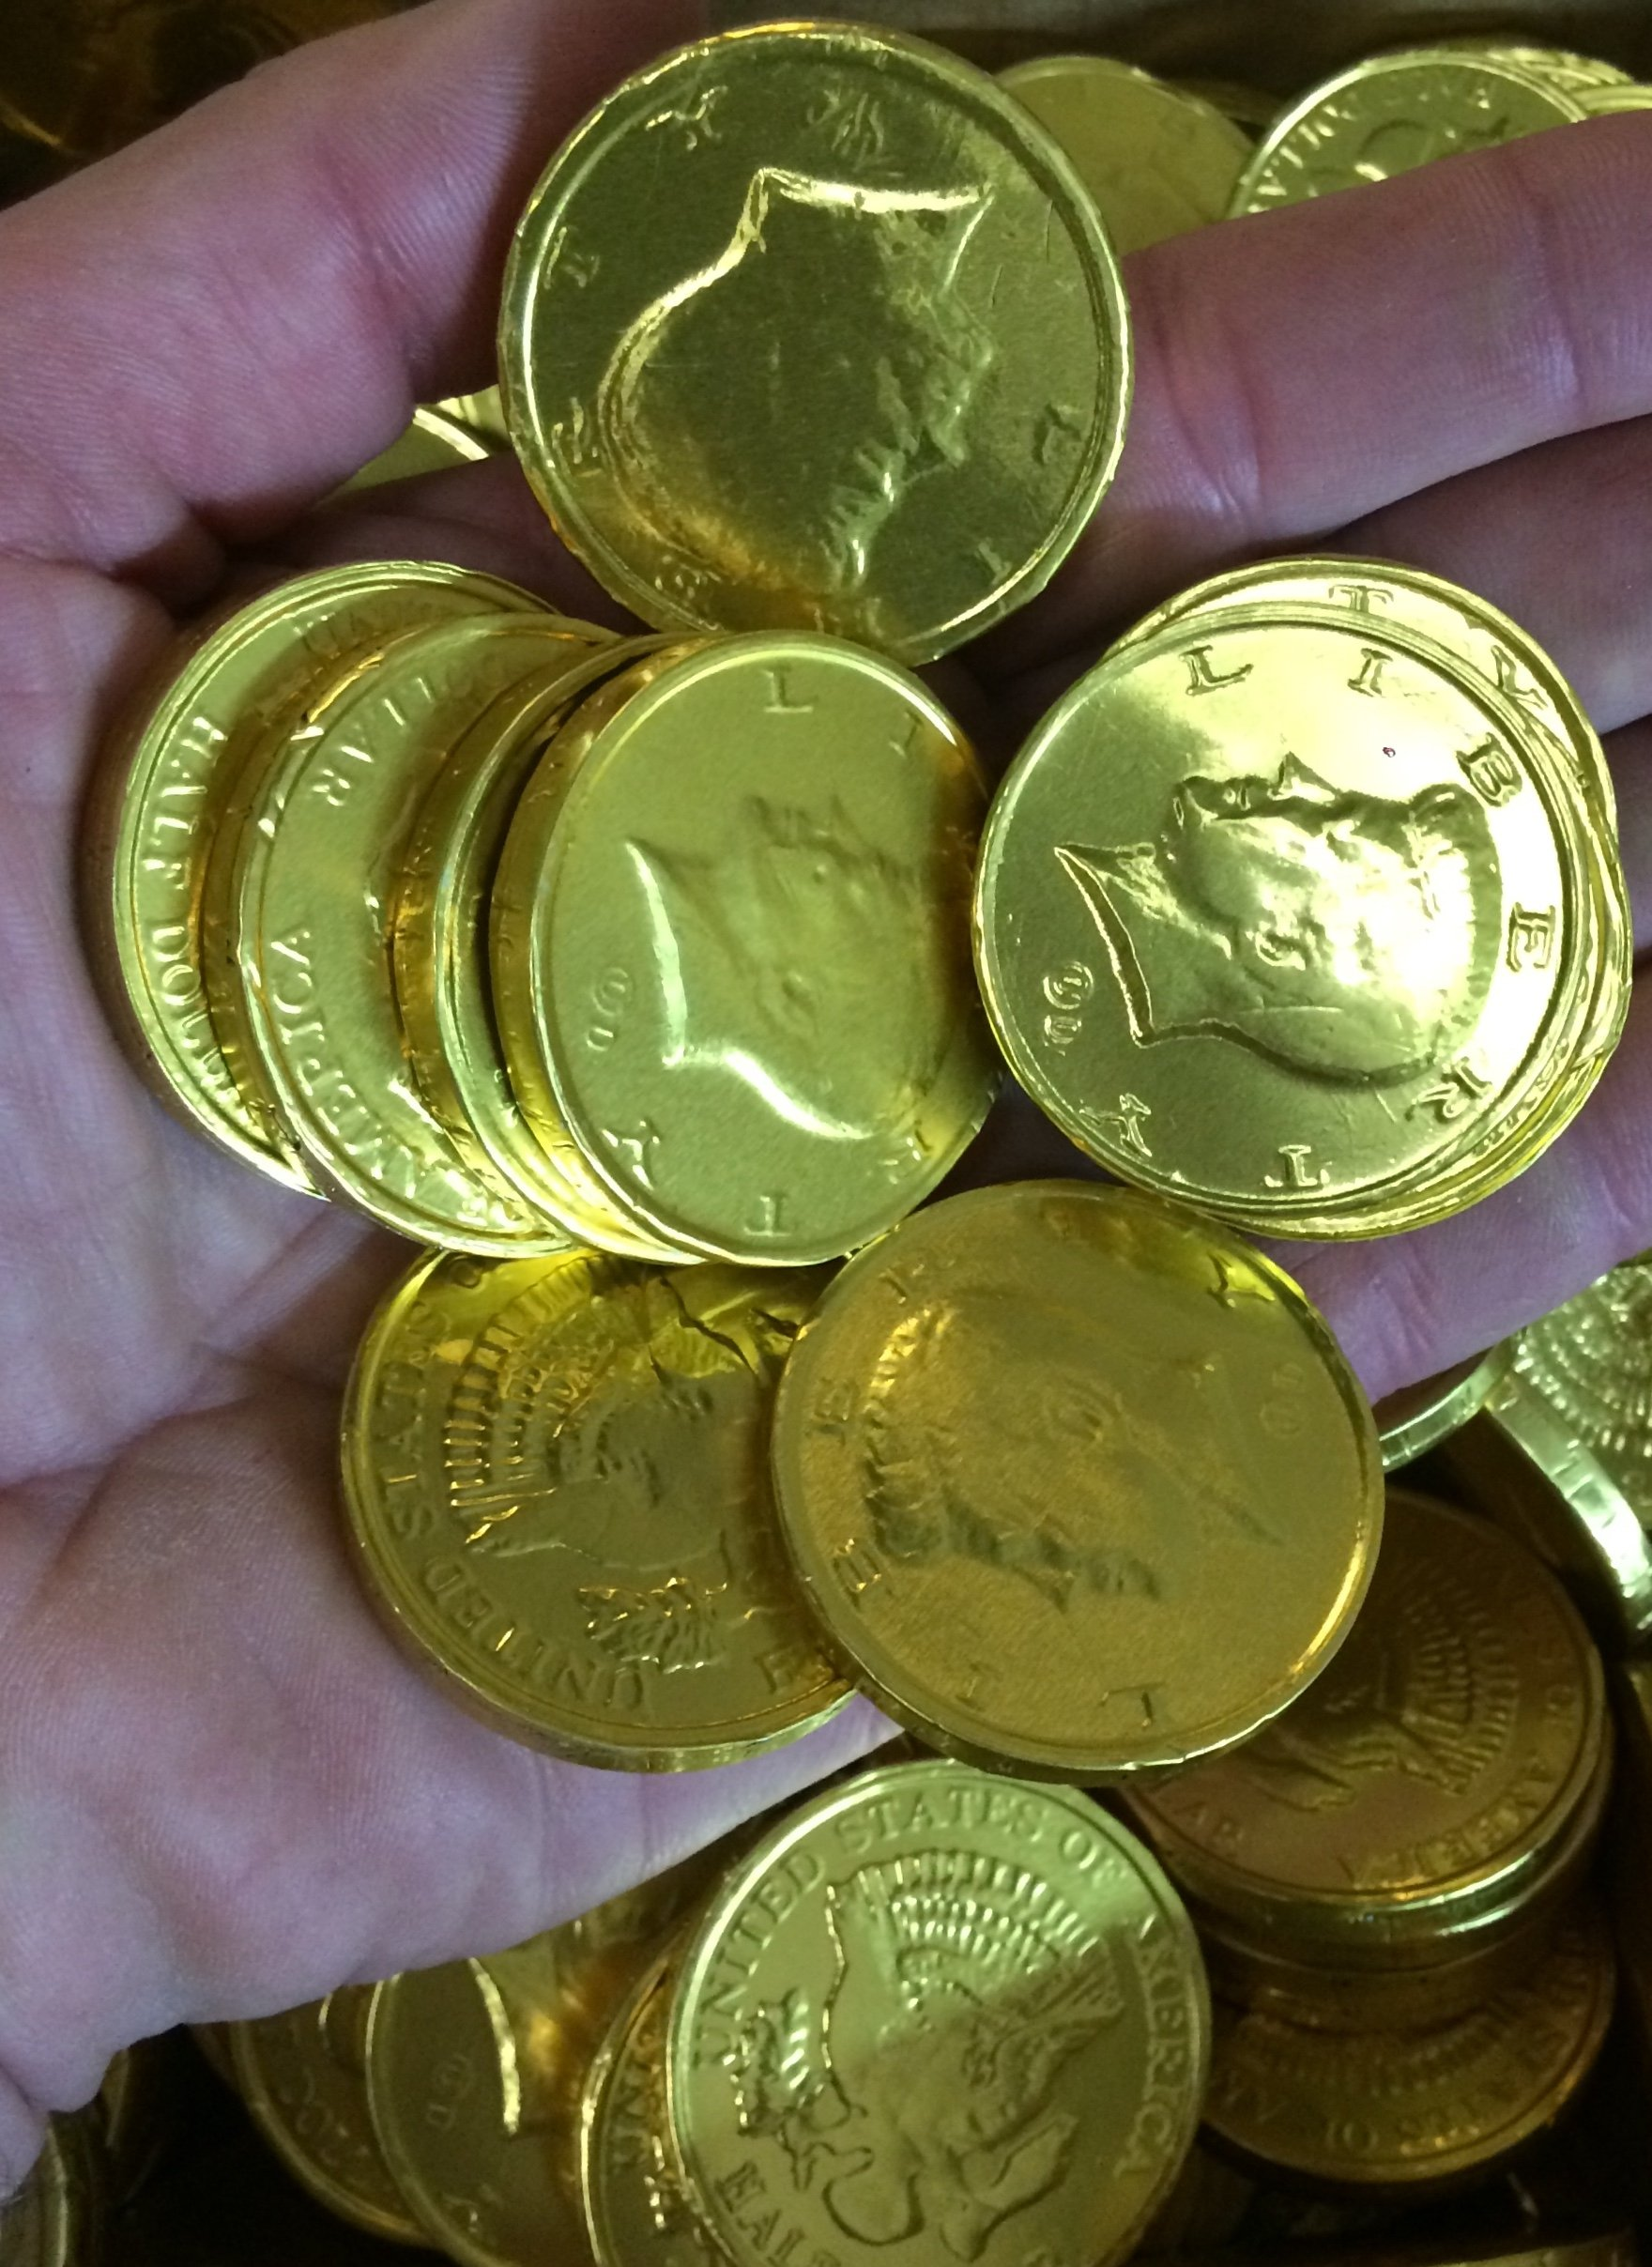 Solid Milk Chocolate Large Kennedy Gold Foil Coins - 10 Pound Box - Wholesale Bulk by River Finn Organics (Image #2)